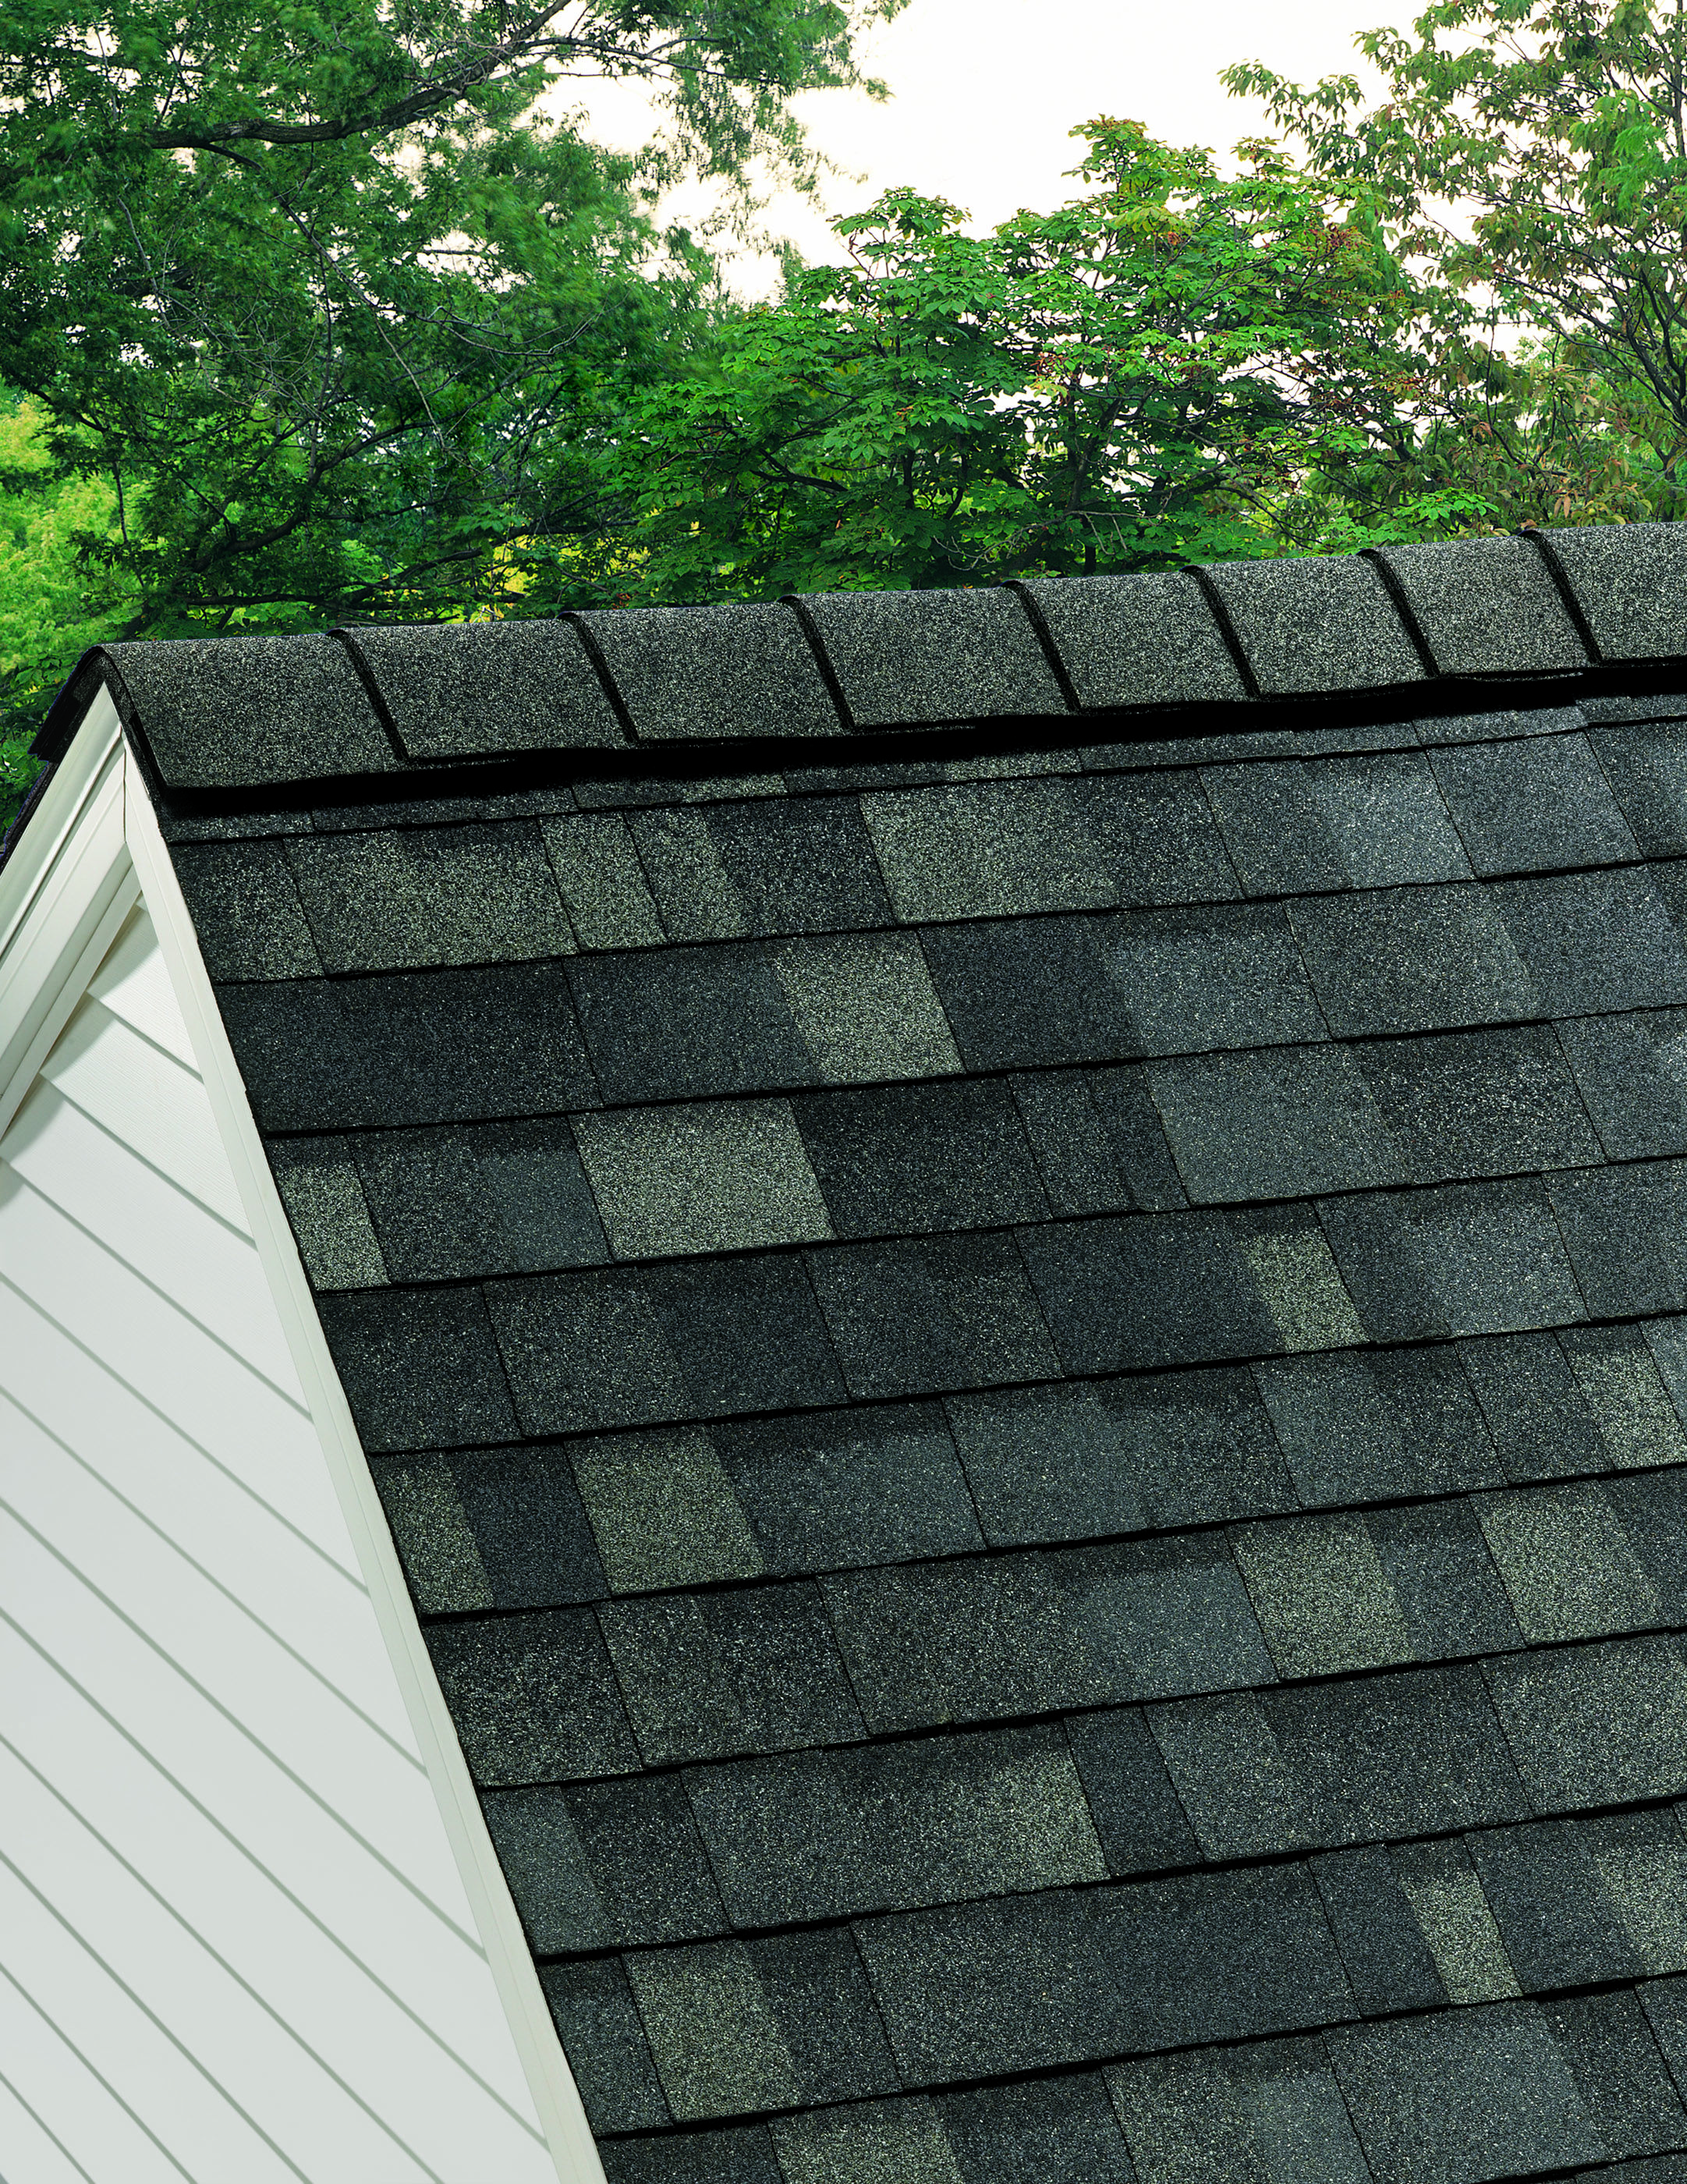 Browse Shingles Owens Corning Roofing Architectural Shingles Composite Roof Shingles Composition Shingles